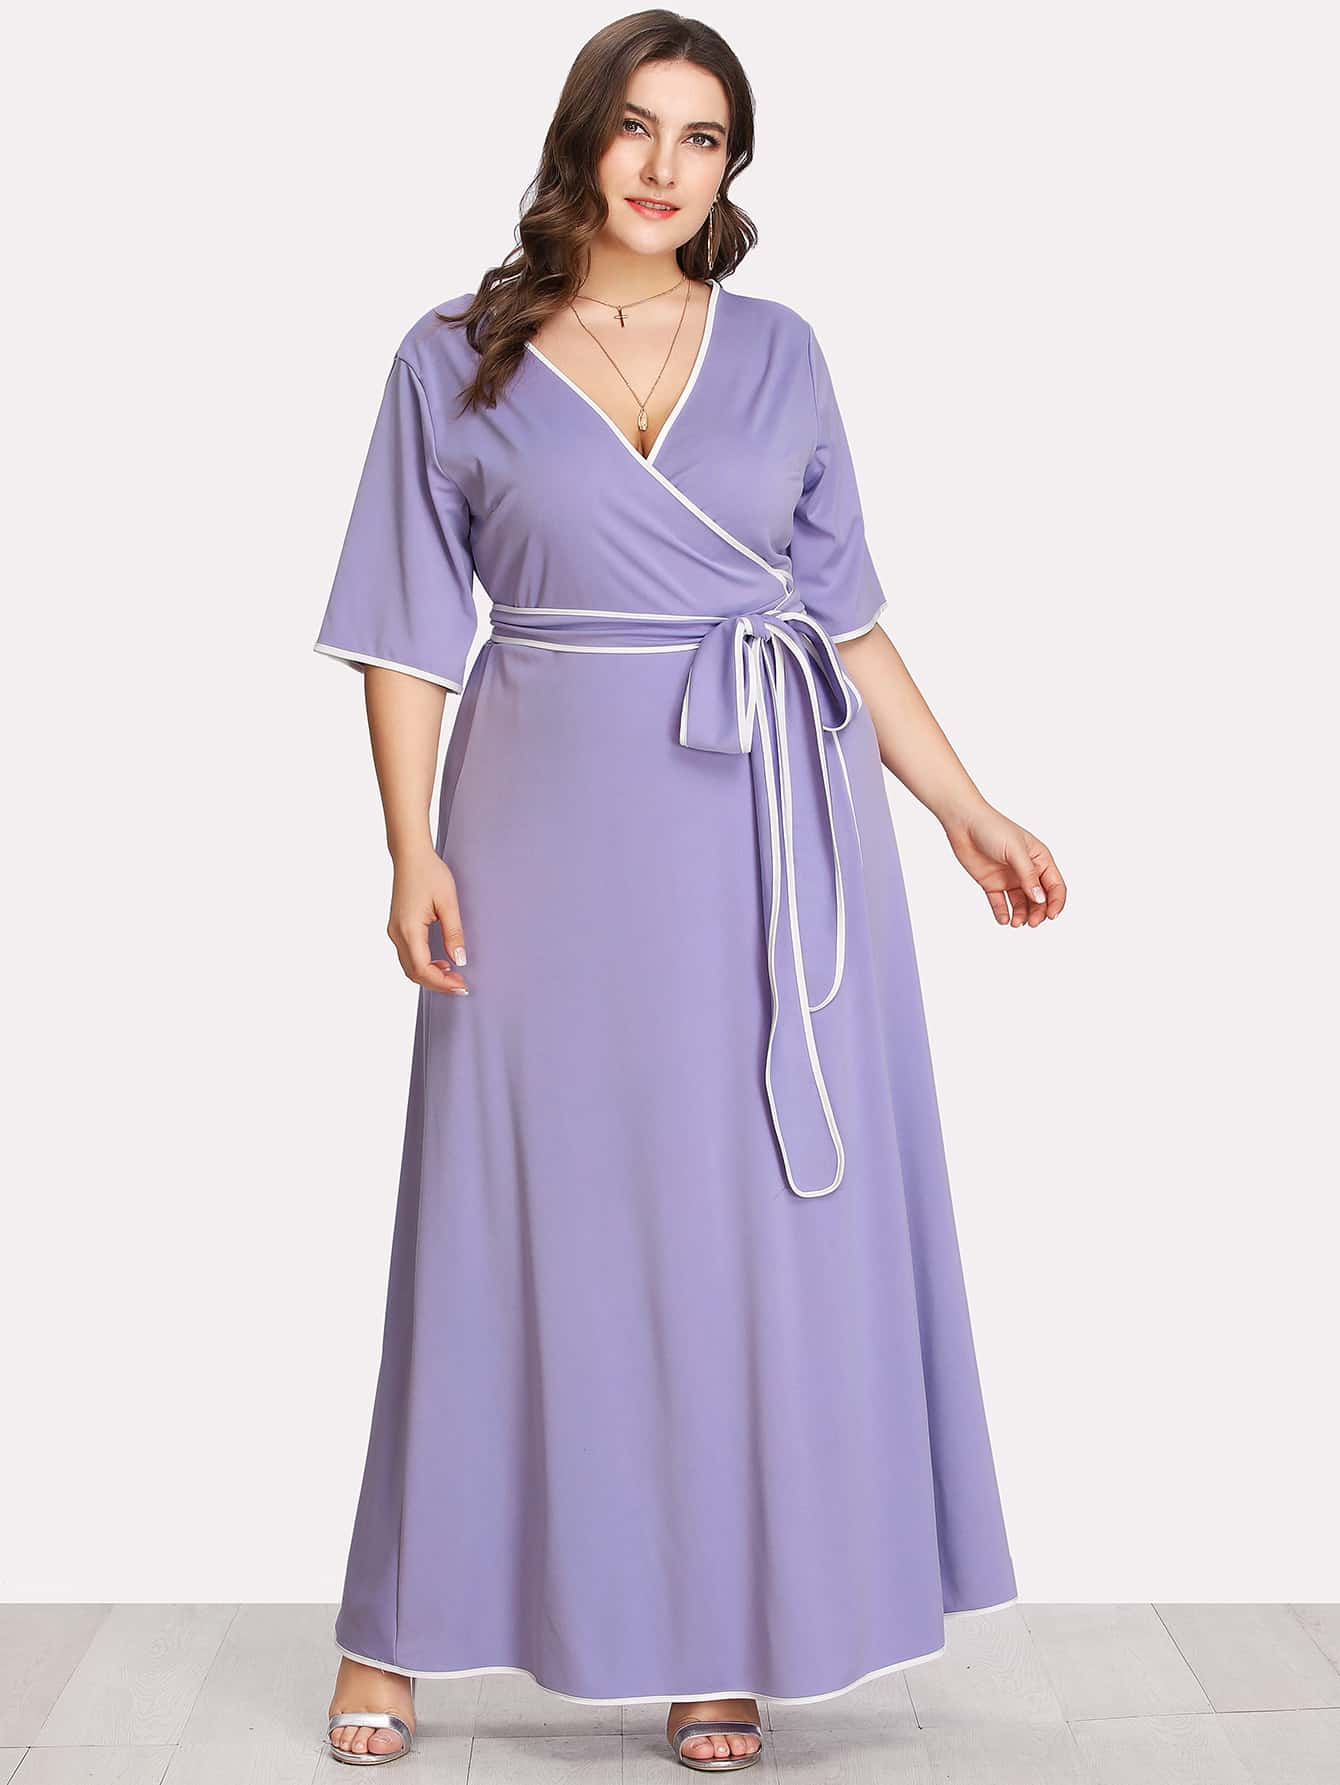 Contrast Binding Self Belted Wrap Dress contrast binding wrap dress